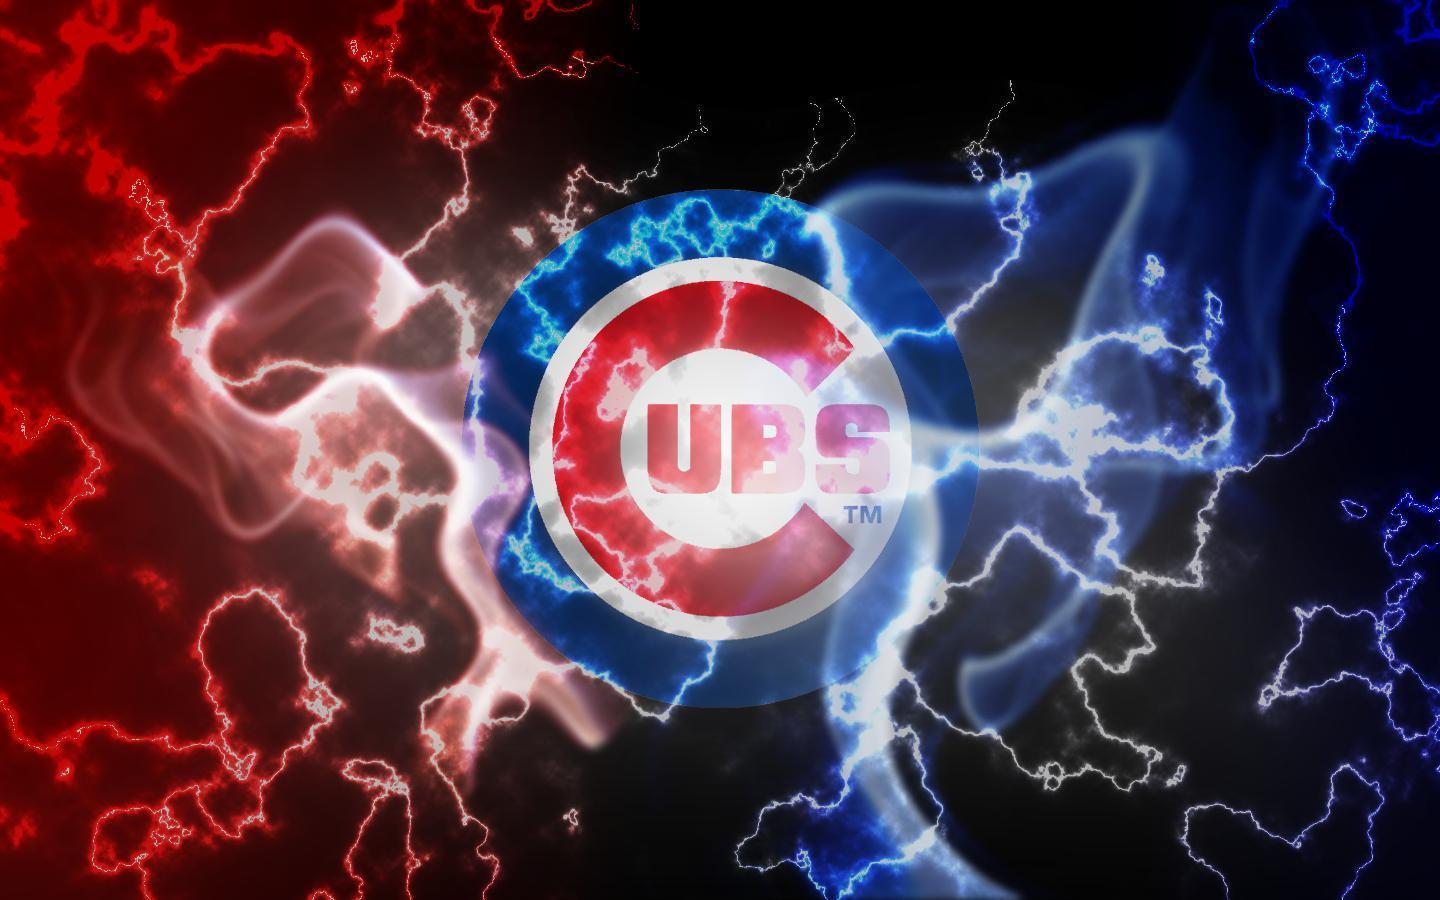 1440x900 - Chicago Cubs Wallpapers 19